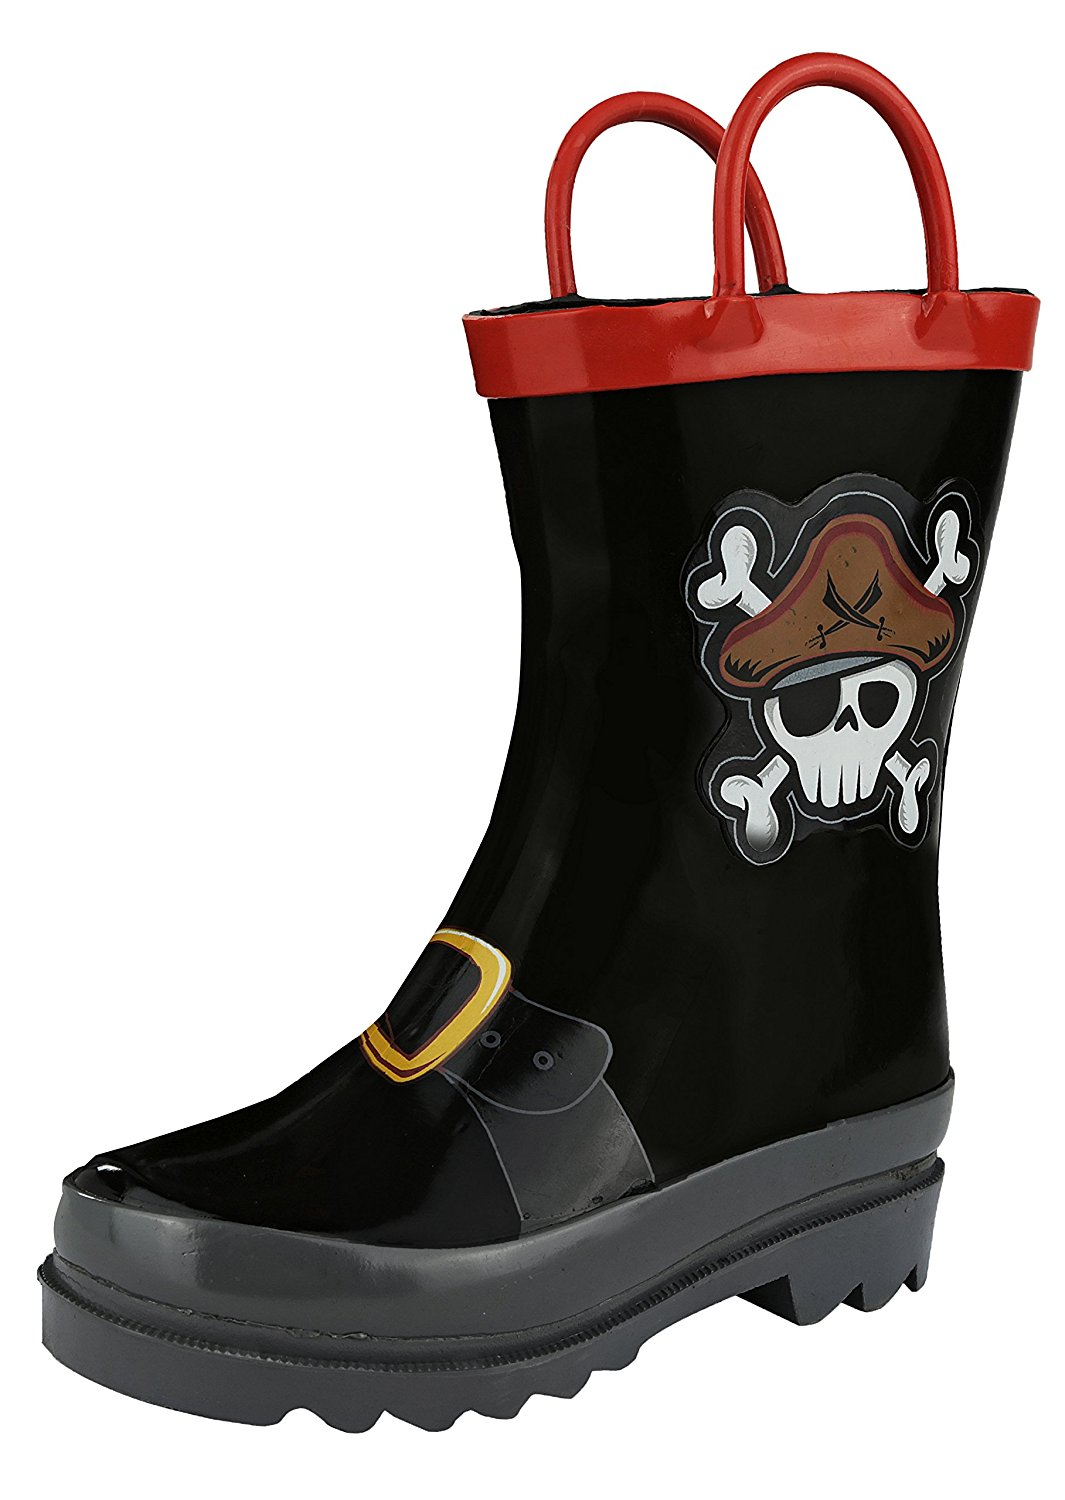 ba5b3880c0c Cheap Pirate Boots Sale, find Pirate Boots Sale deals on line at ...